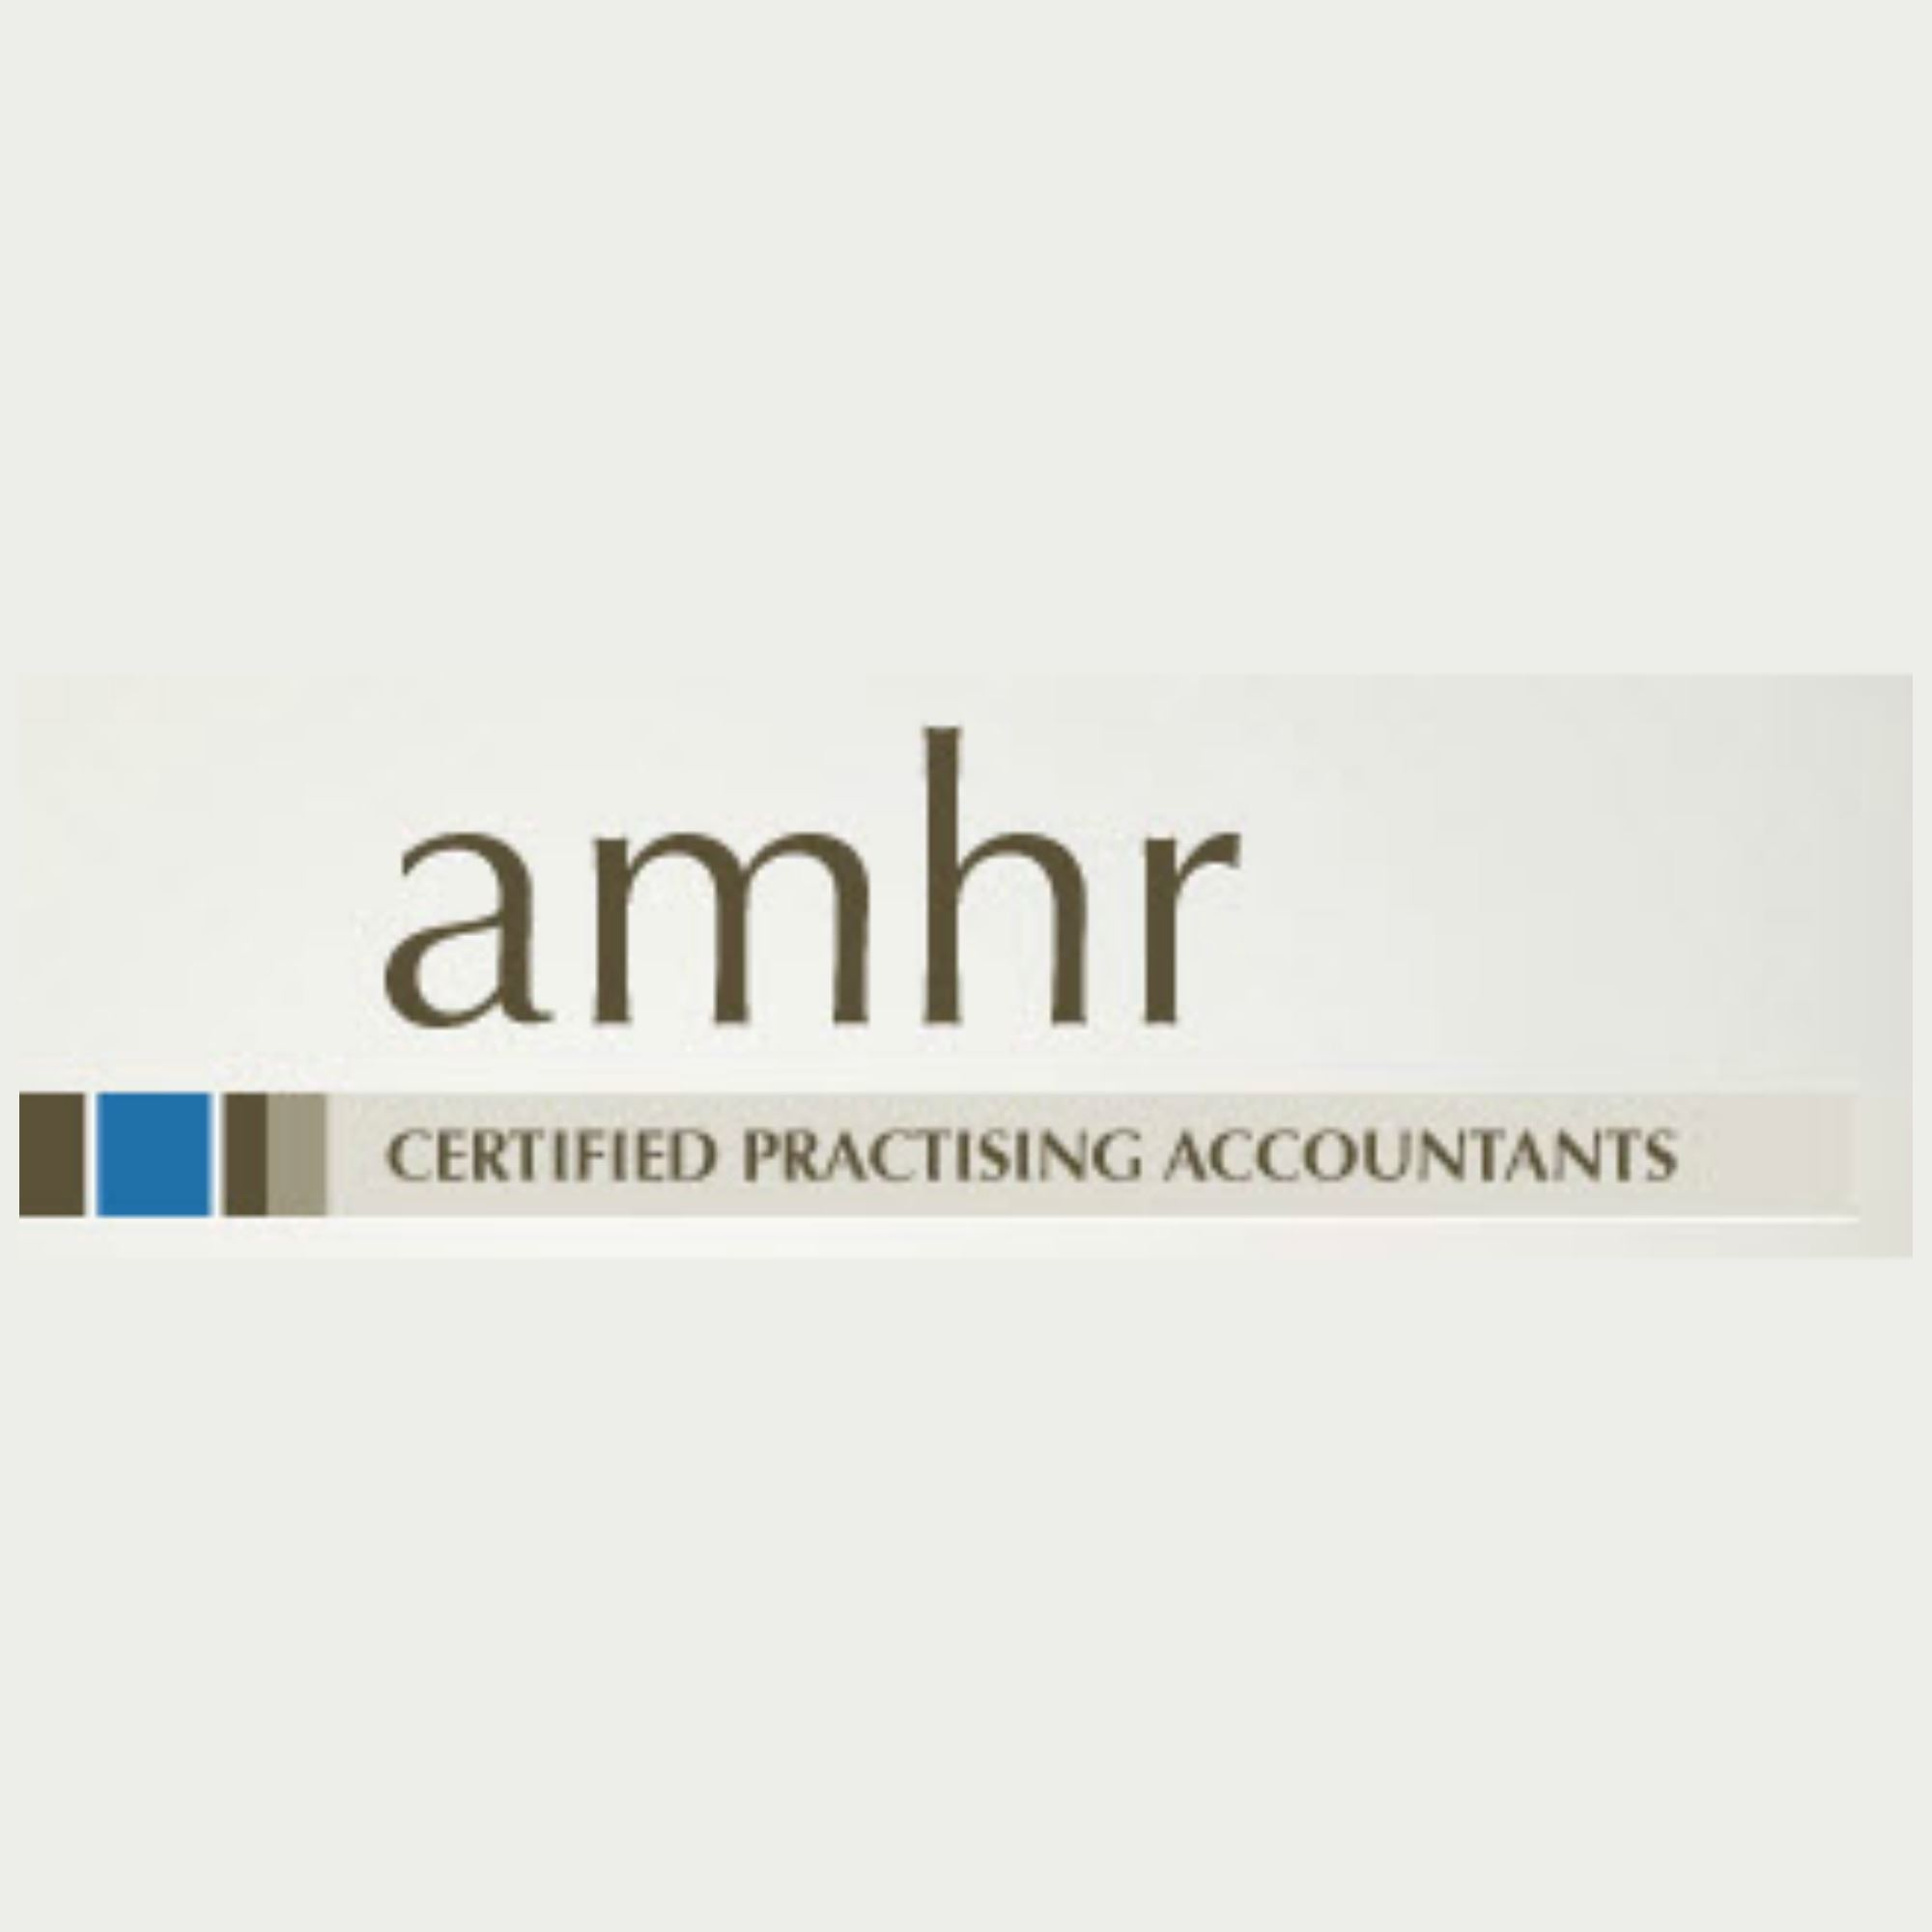 AMHR - Certified Practicising Accountants